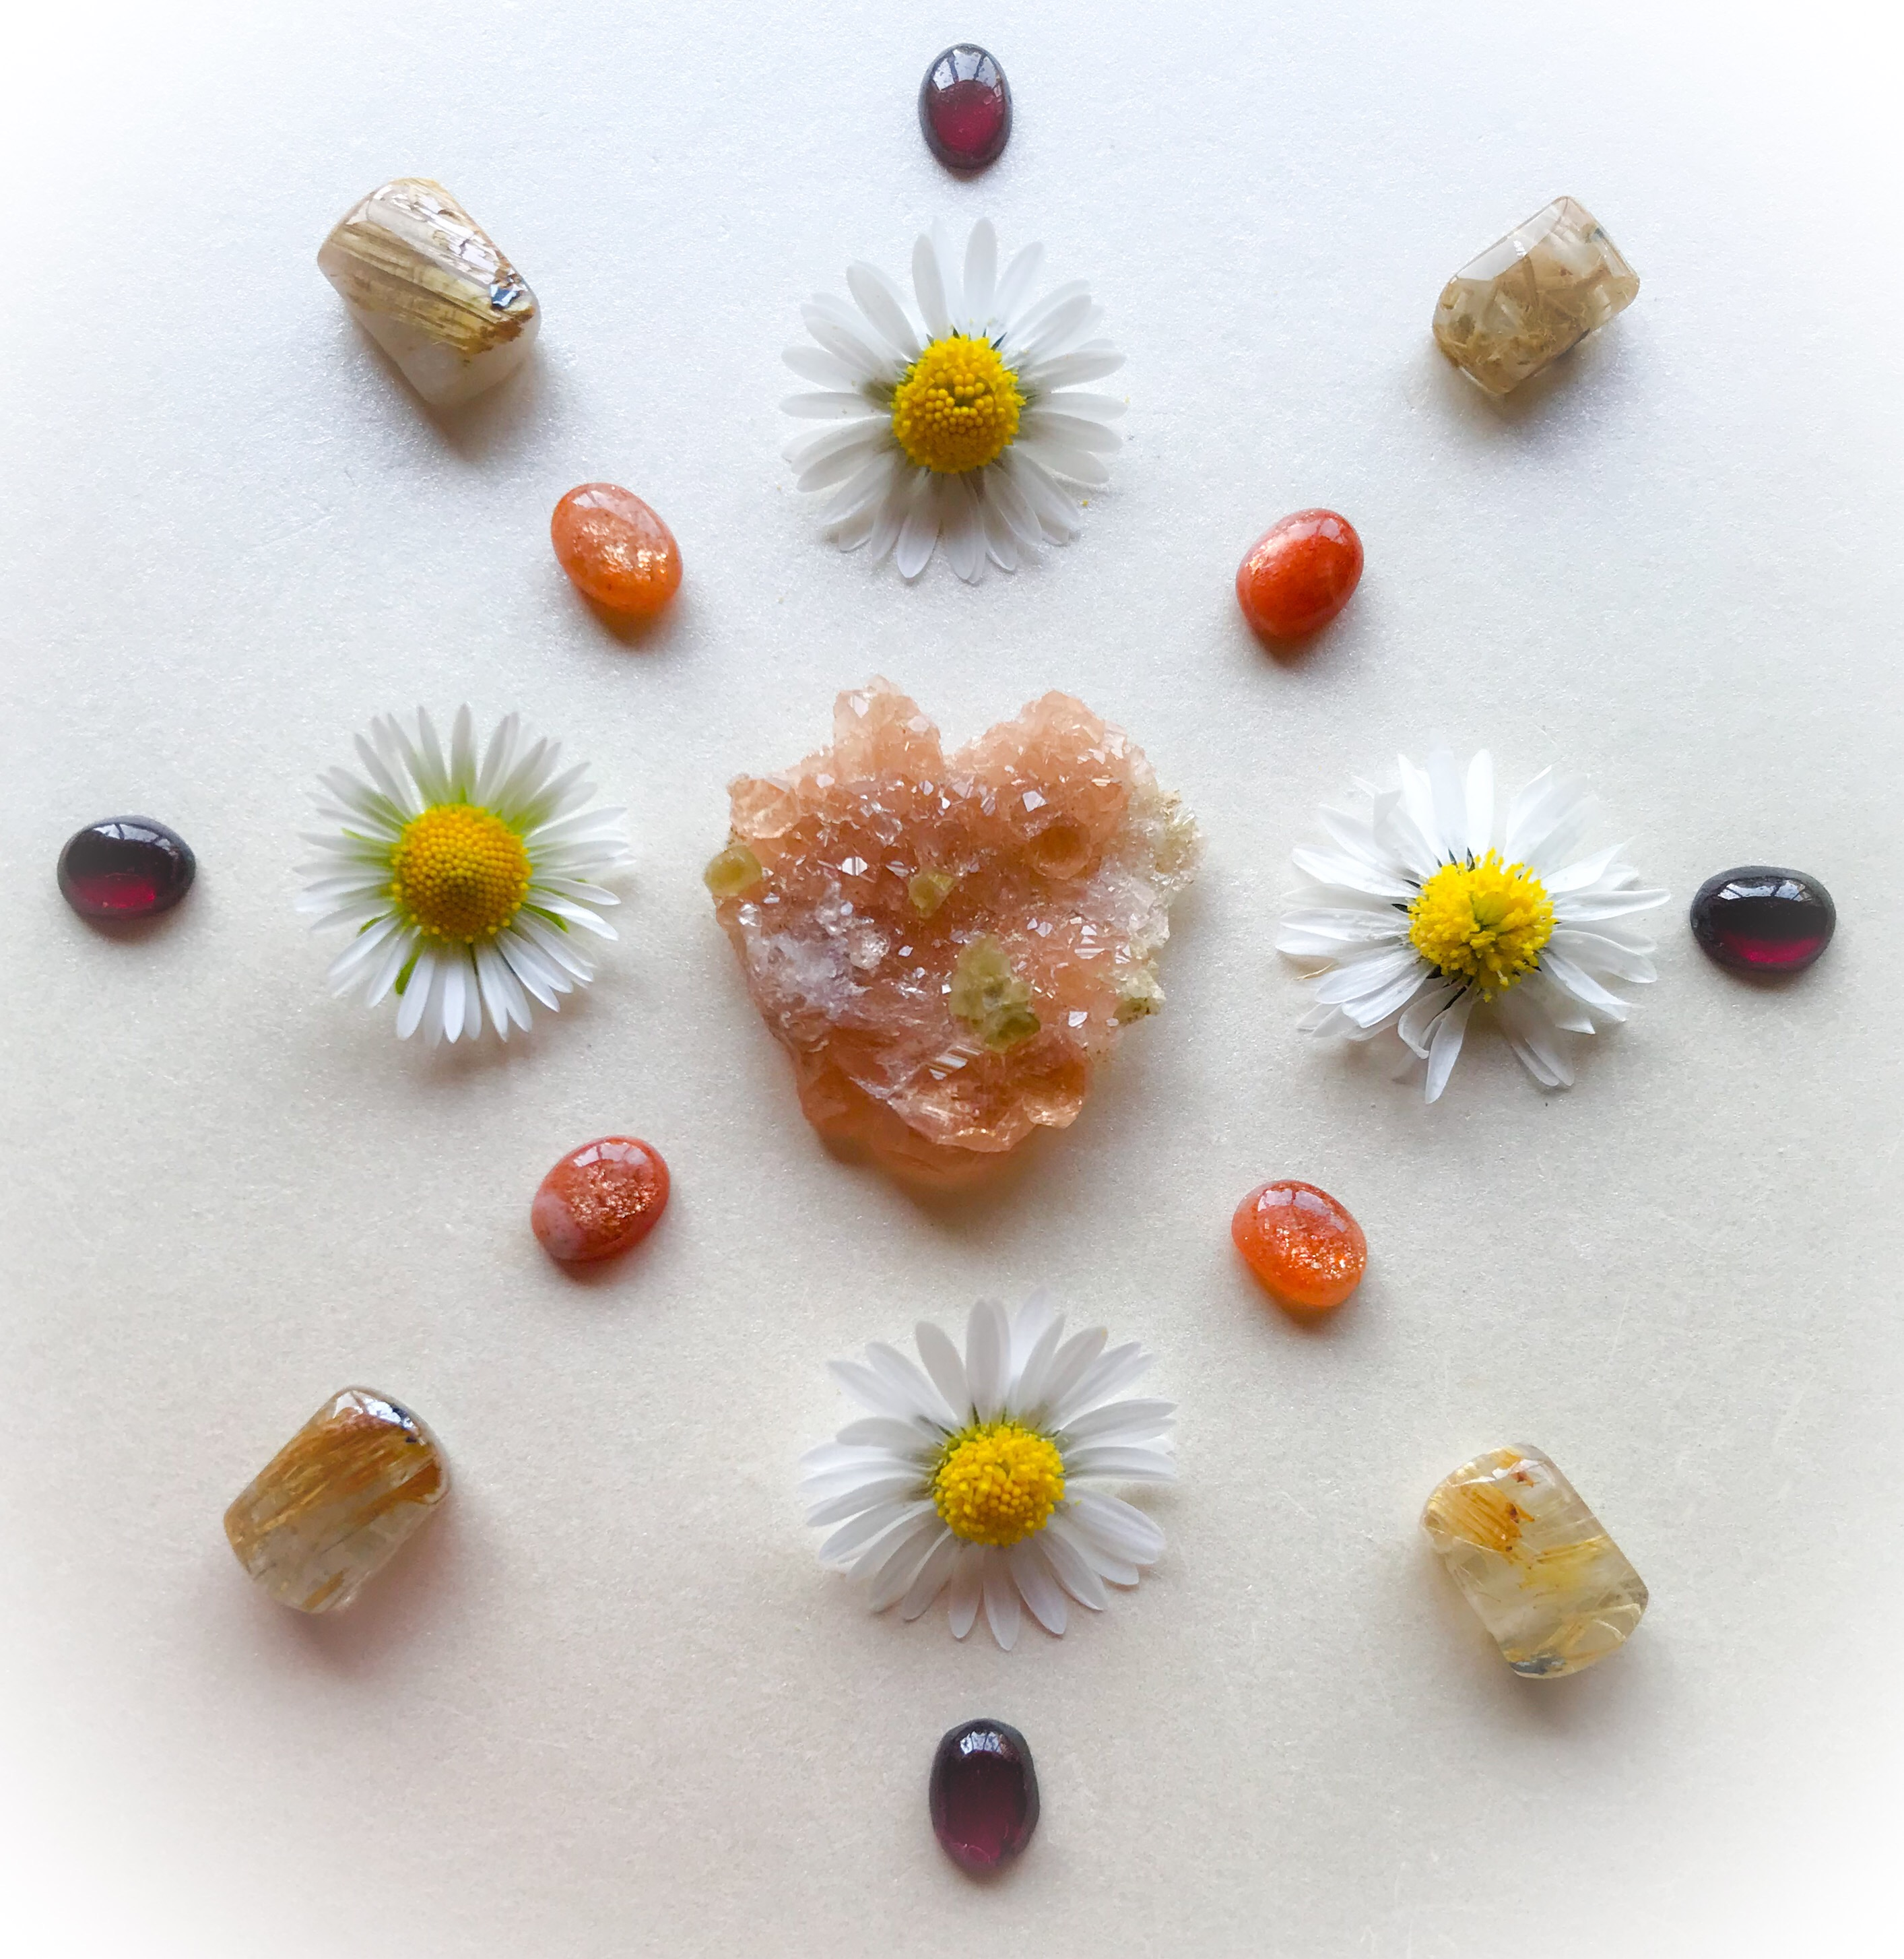 Hessonite, Sunstone, Rutile Quartz, Garnet and Bellis perennis